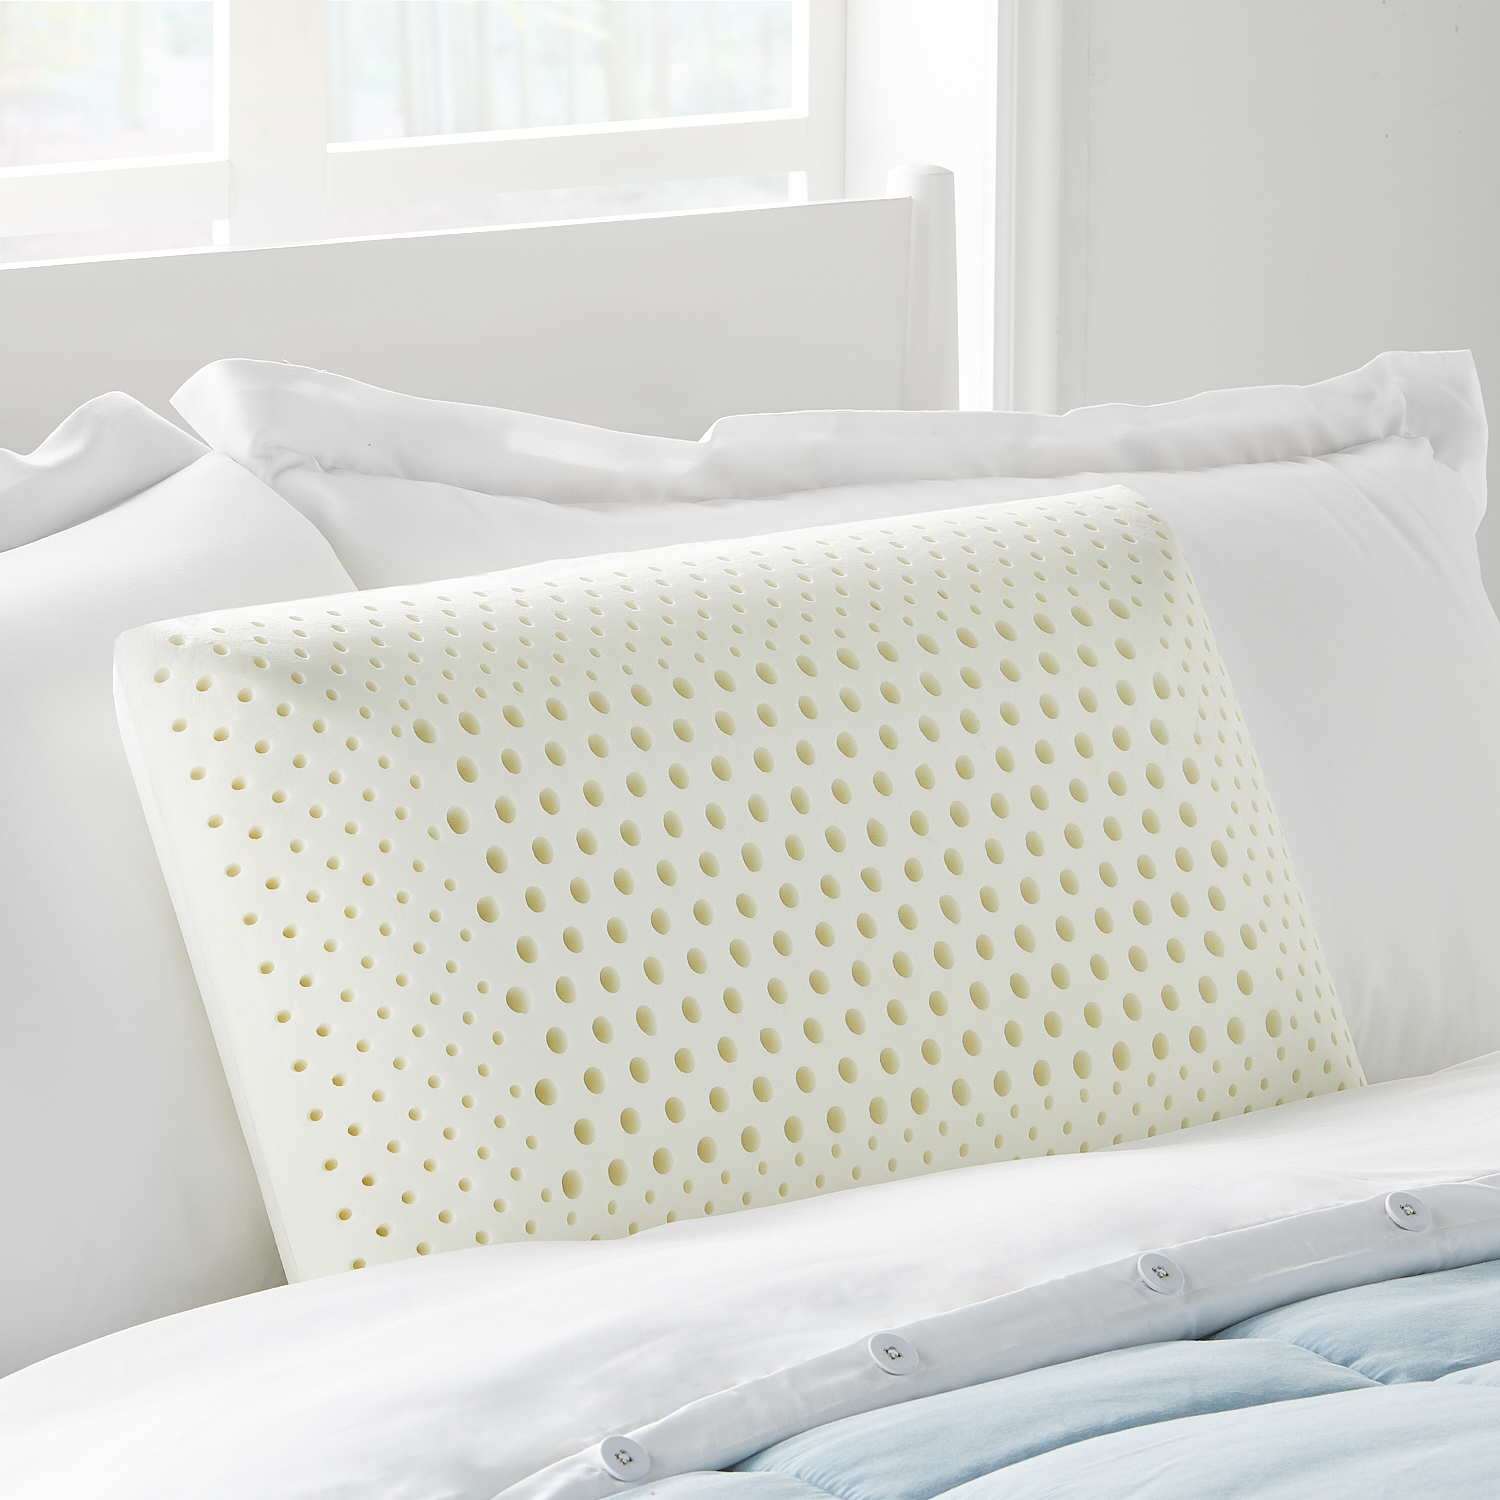 Lucid Dual Zone Memory Foam Pillow